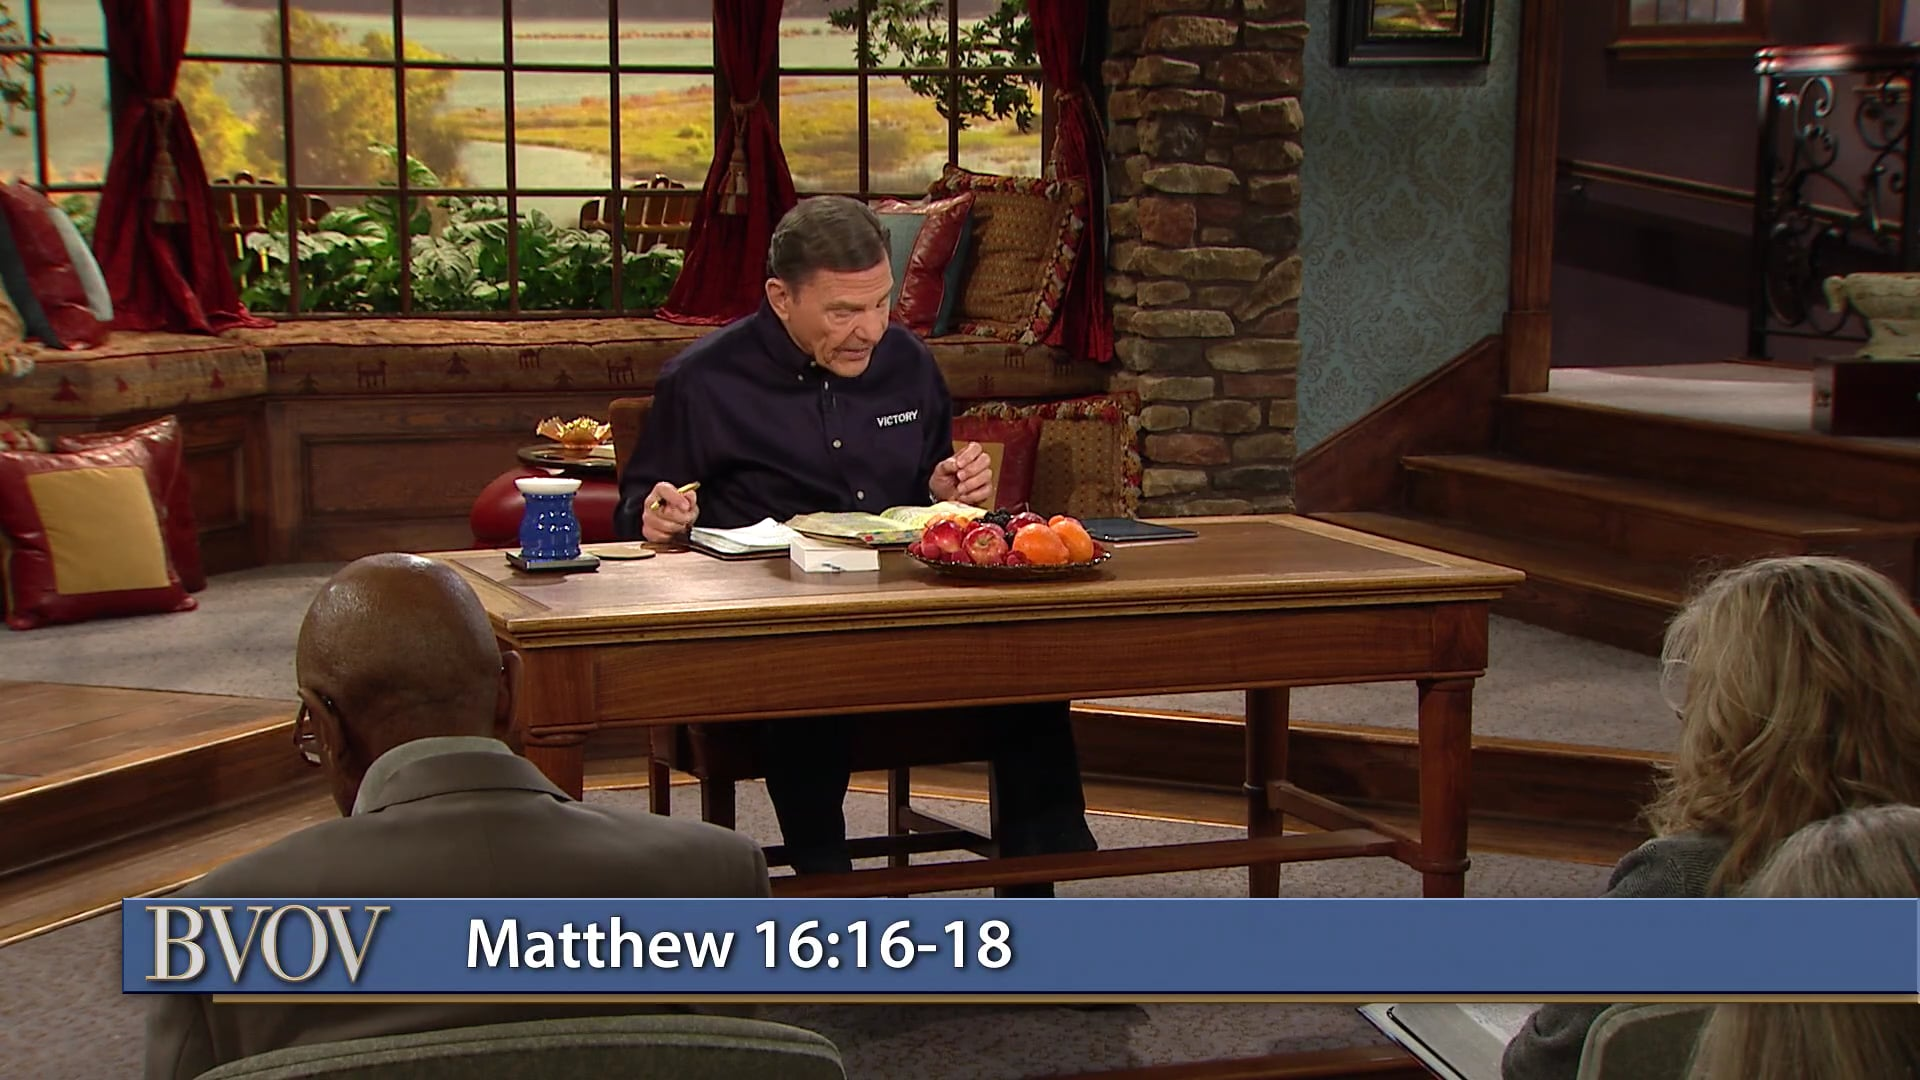 """Do you know what Jesus meant when He said, """"On this rock I will build My church..."""" (Matthew 16:18, New King James Version)? Join Kenneth Copeland on Believer's Voice of Victory as he teaches you the difference between revealed knowledge and sense knowledge. Learn why the Church is built on the rock of revelation knowledge and how you can live in the fullness of its benefits."""